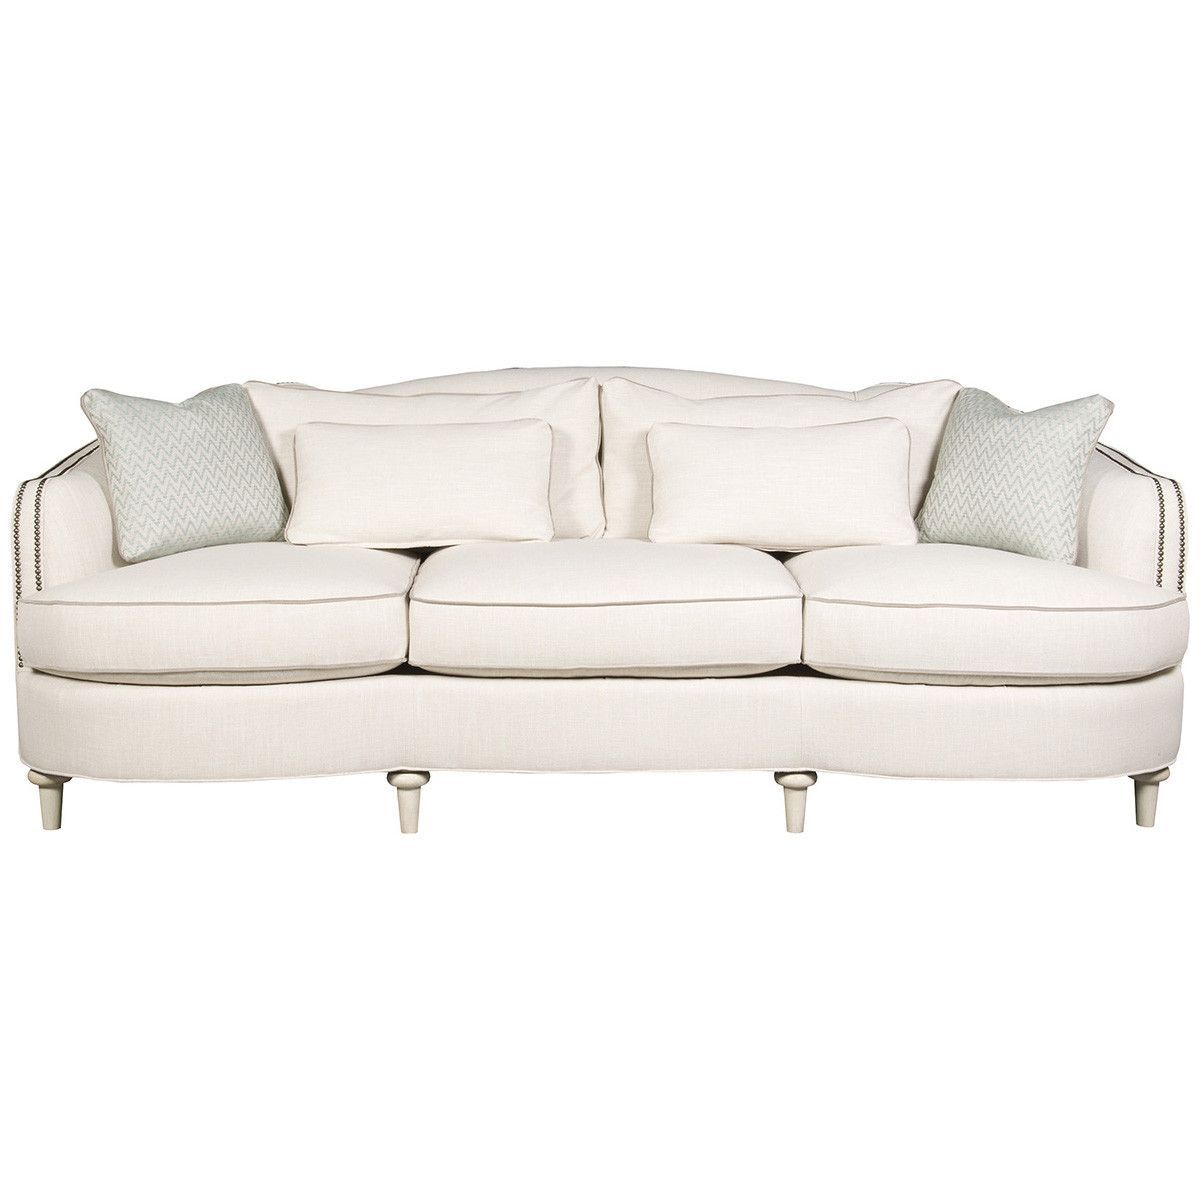 Shop For Vanguard Sofa, And Other Living Room Sofas At Vanguard Furniture  In Conover, NC. Fabric Only.